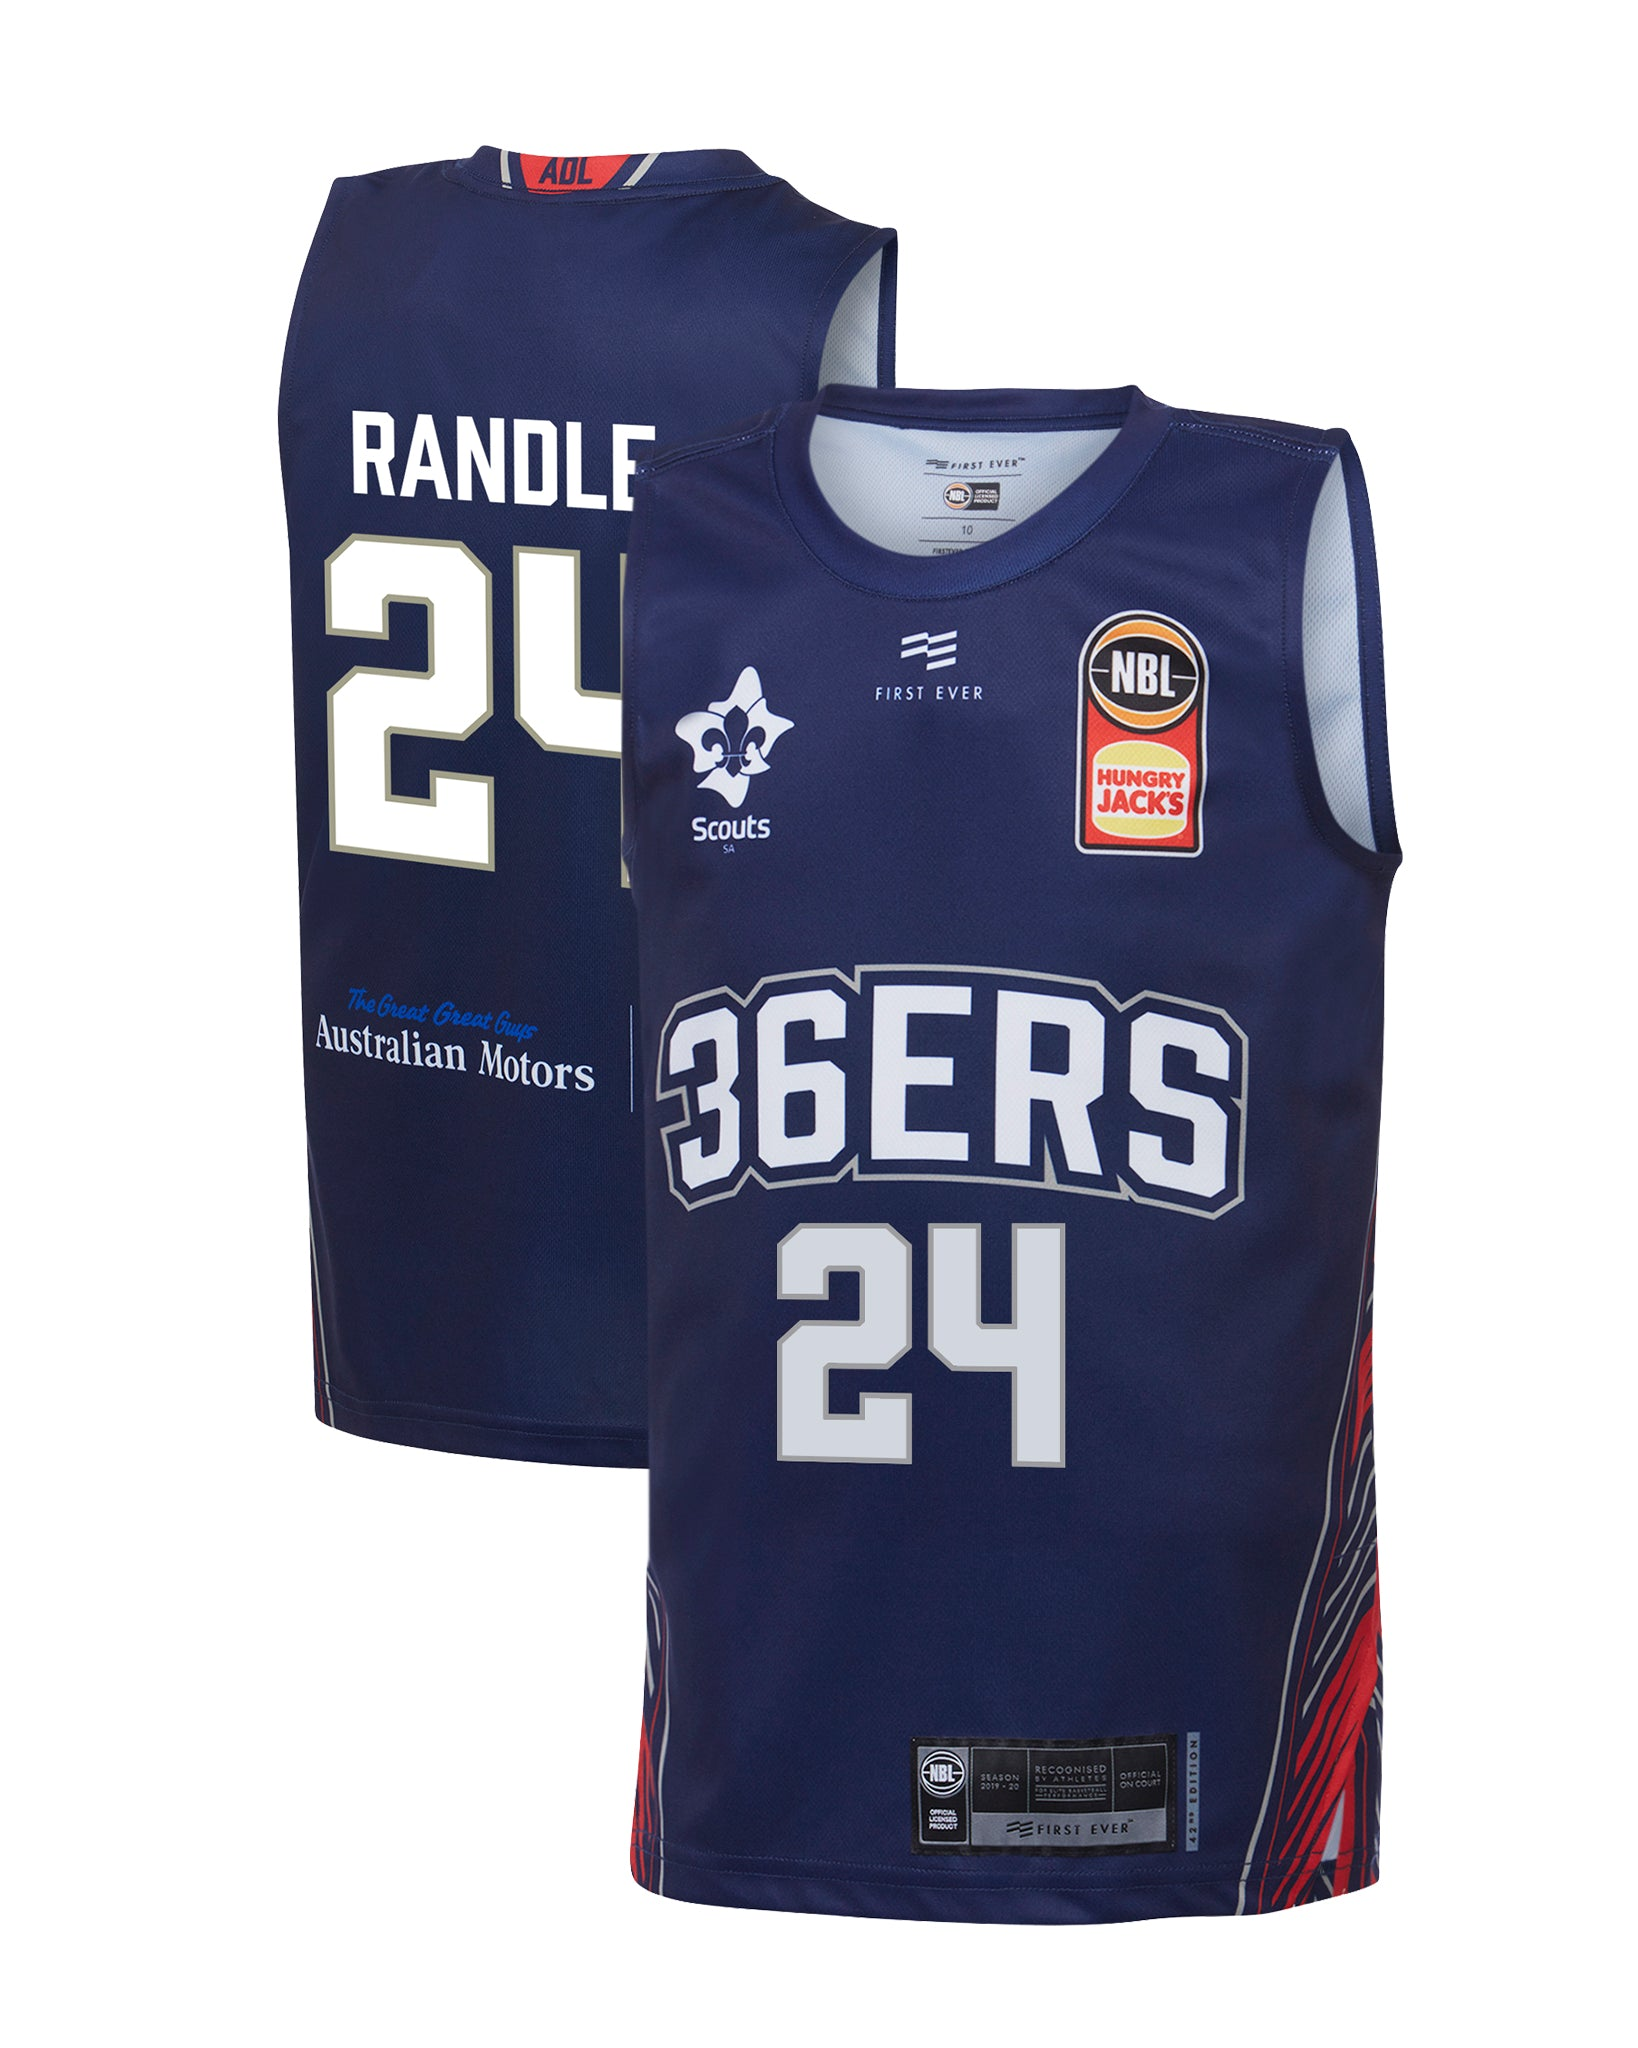 Adelaide 36ers 19/20 Youth Authentic Home Jersey - Jerome Randle